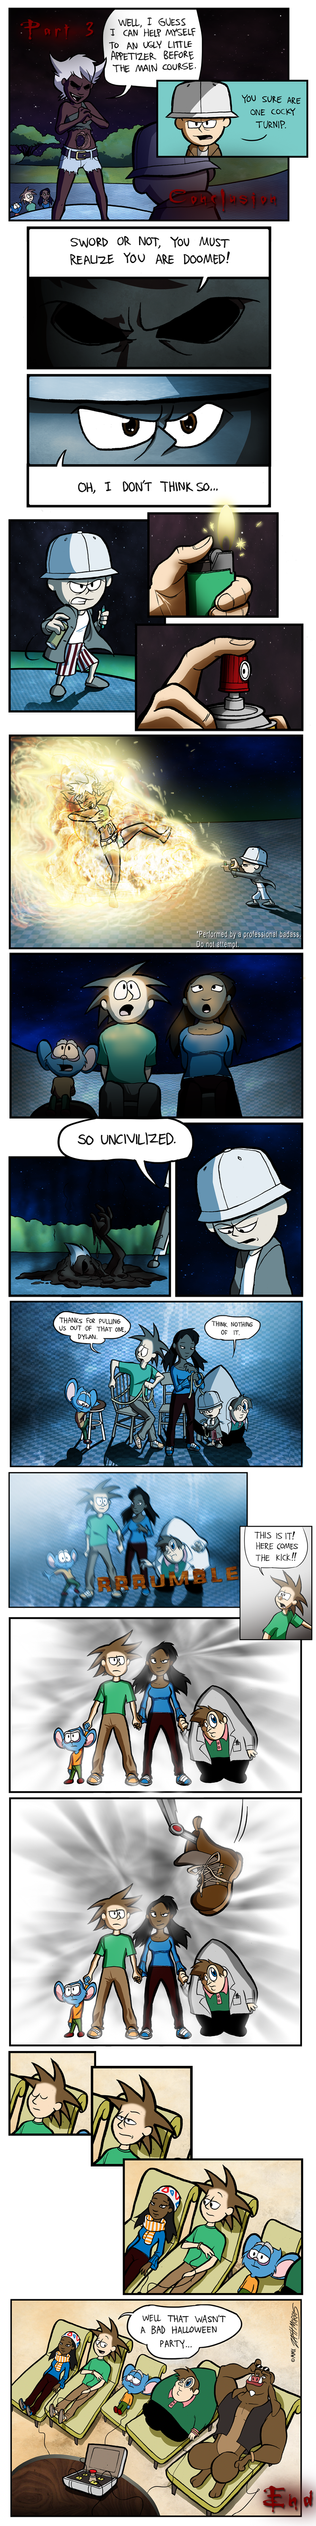 Halloween '10 Part 3 by WillDrawForFood1